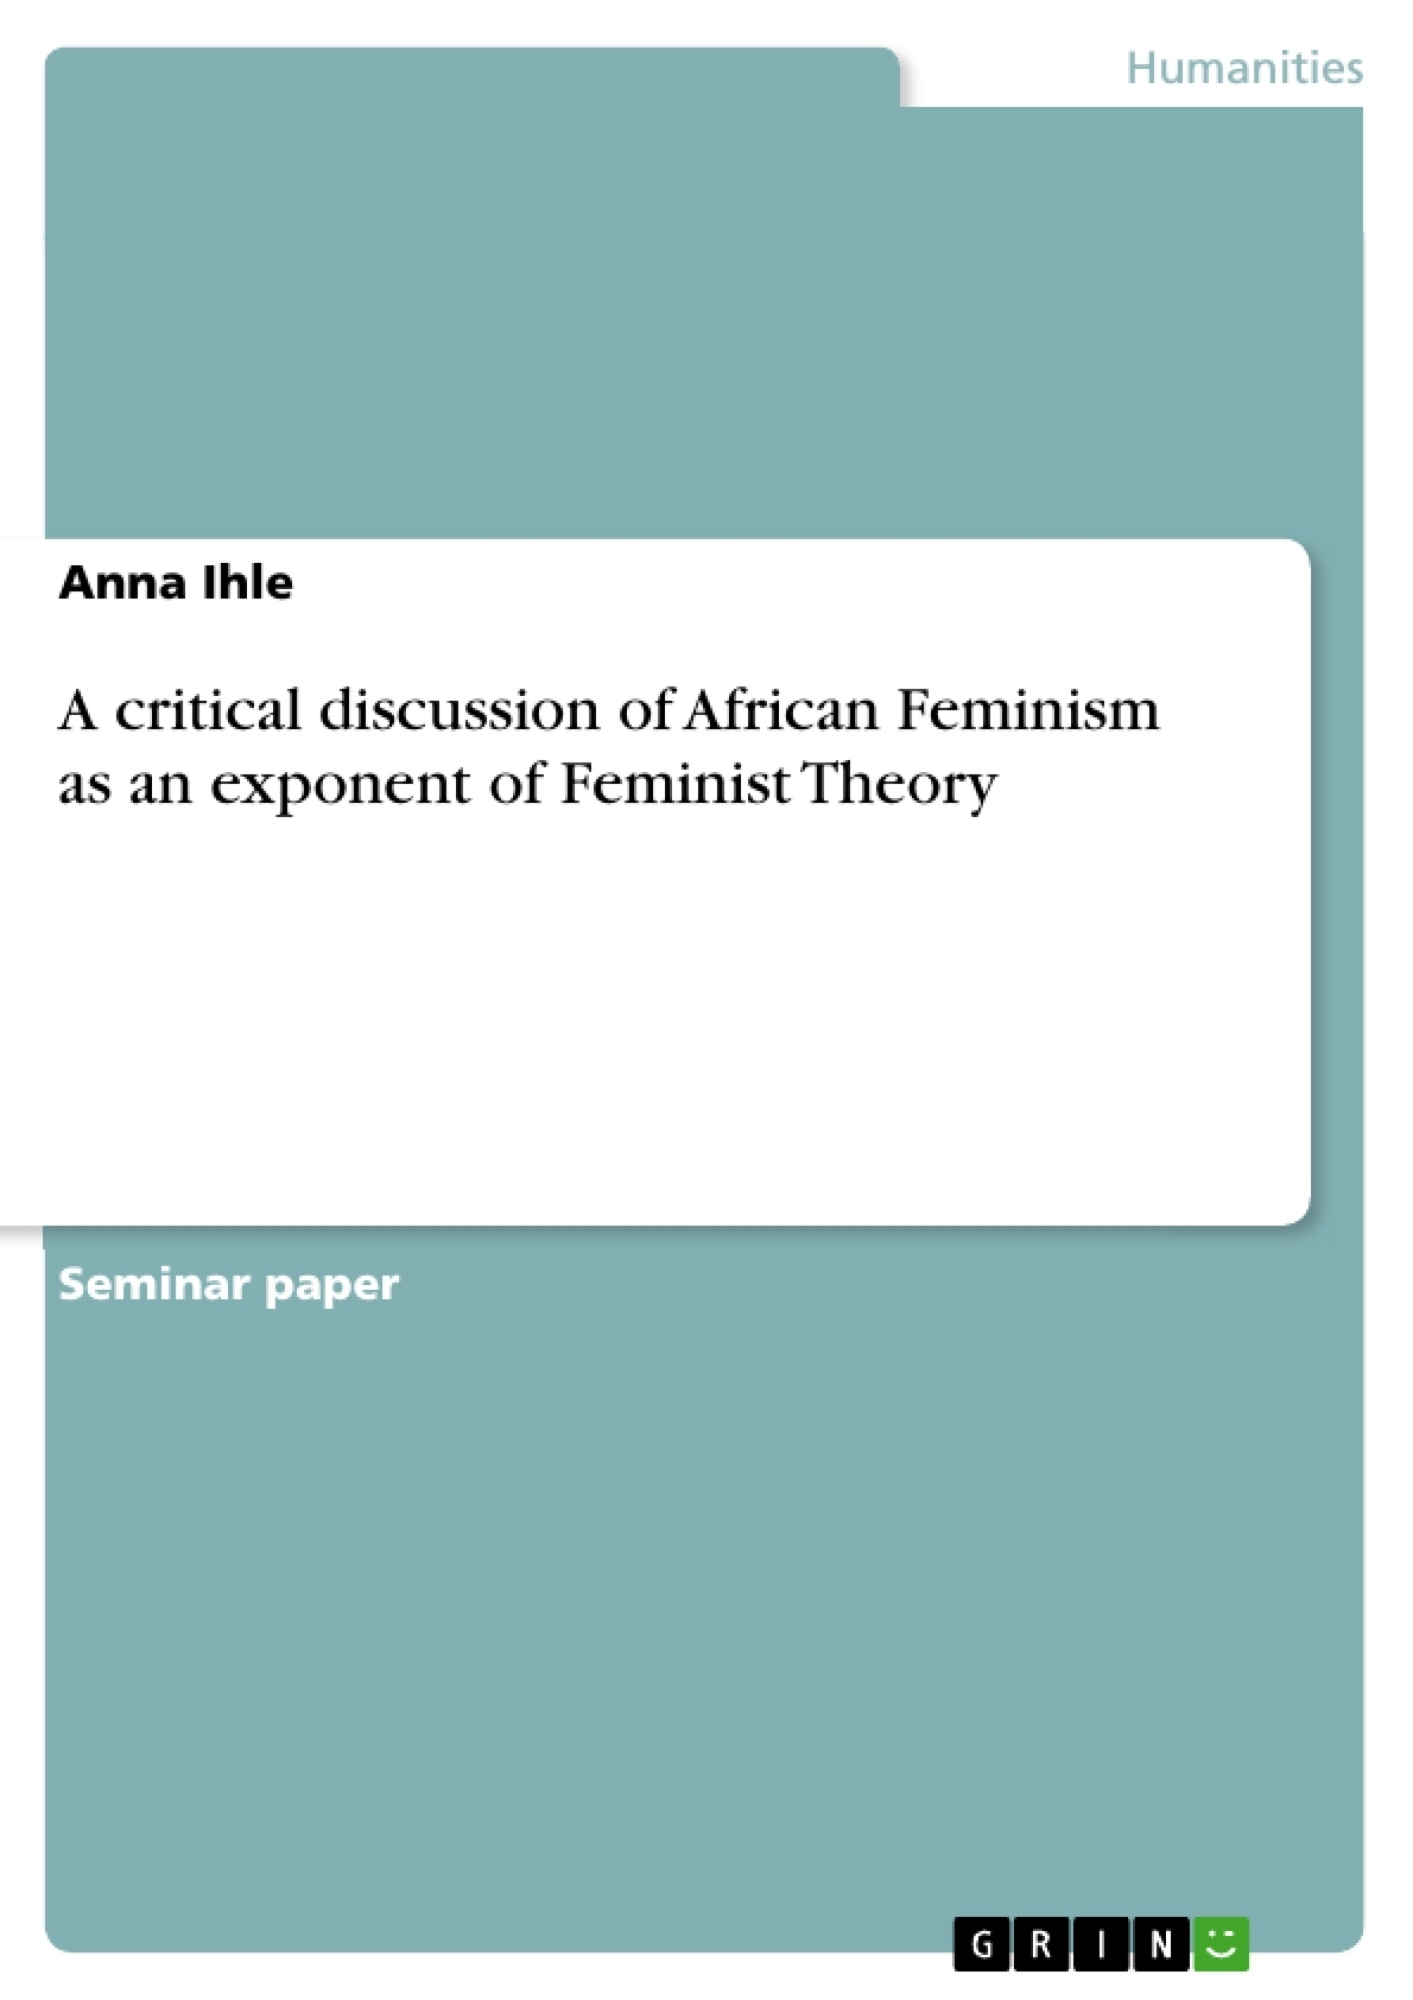 Title: A critical discussion of African Feminism as an exponent of Feminist Theory